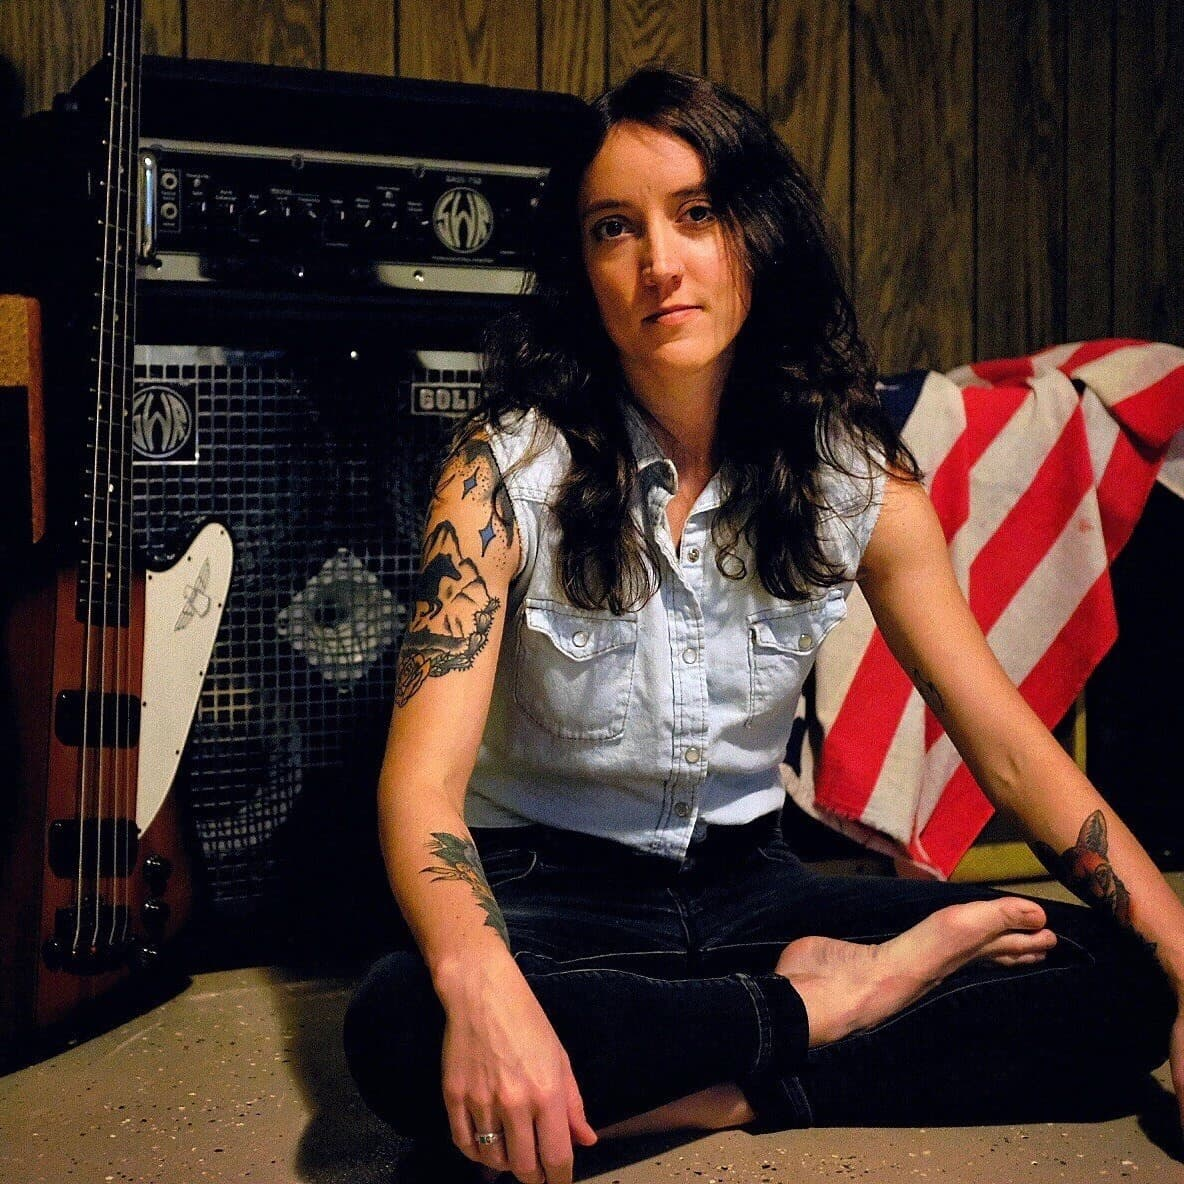 Sylvia Rose Novak sitting in front of her amp, a bass guitar and American flag